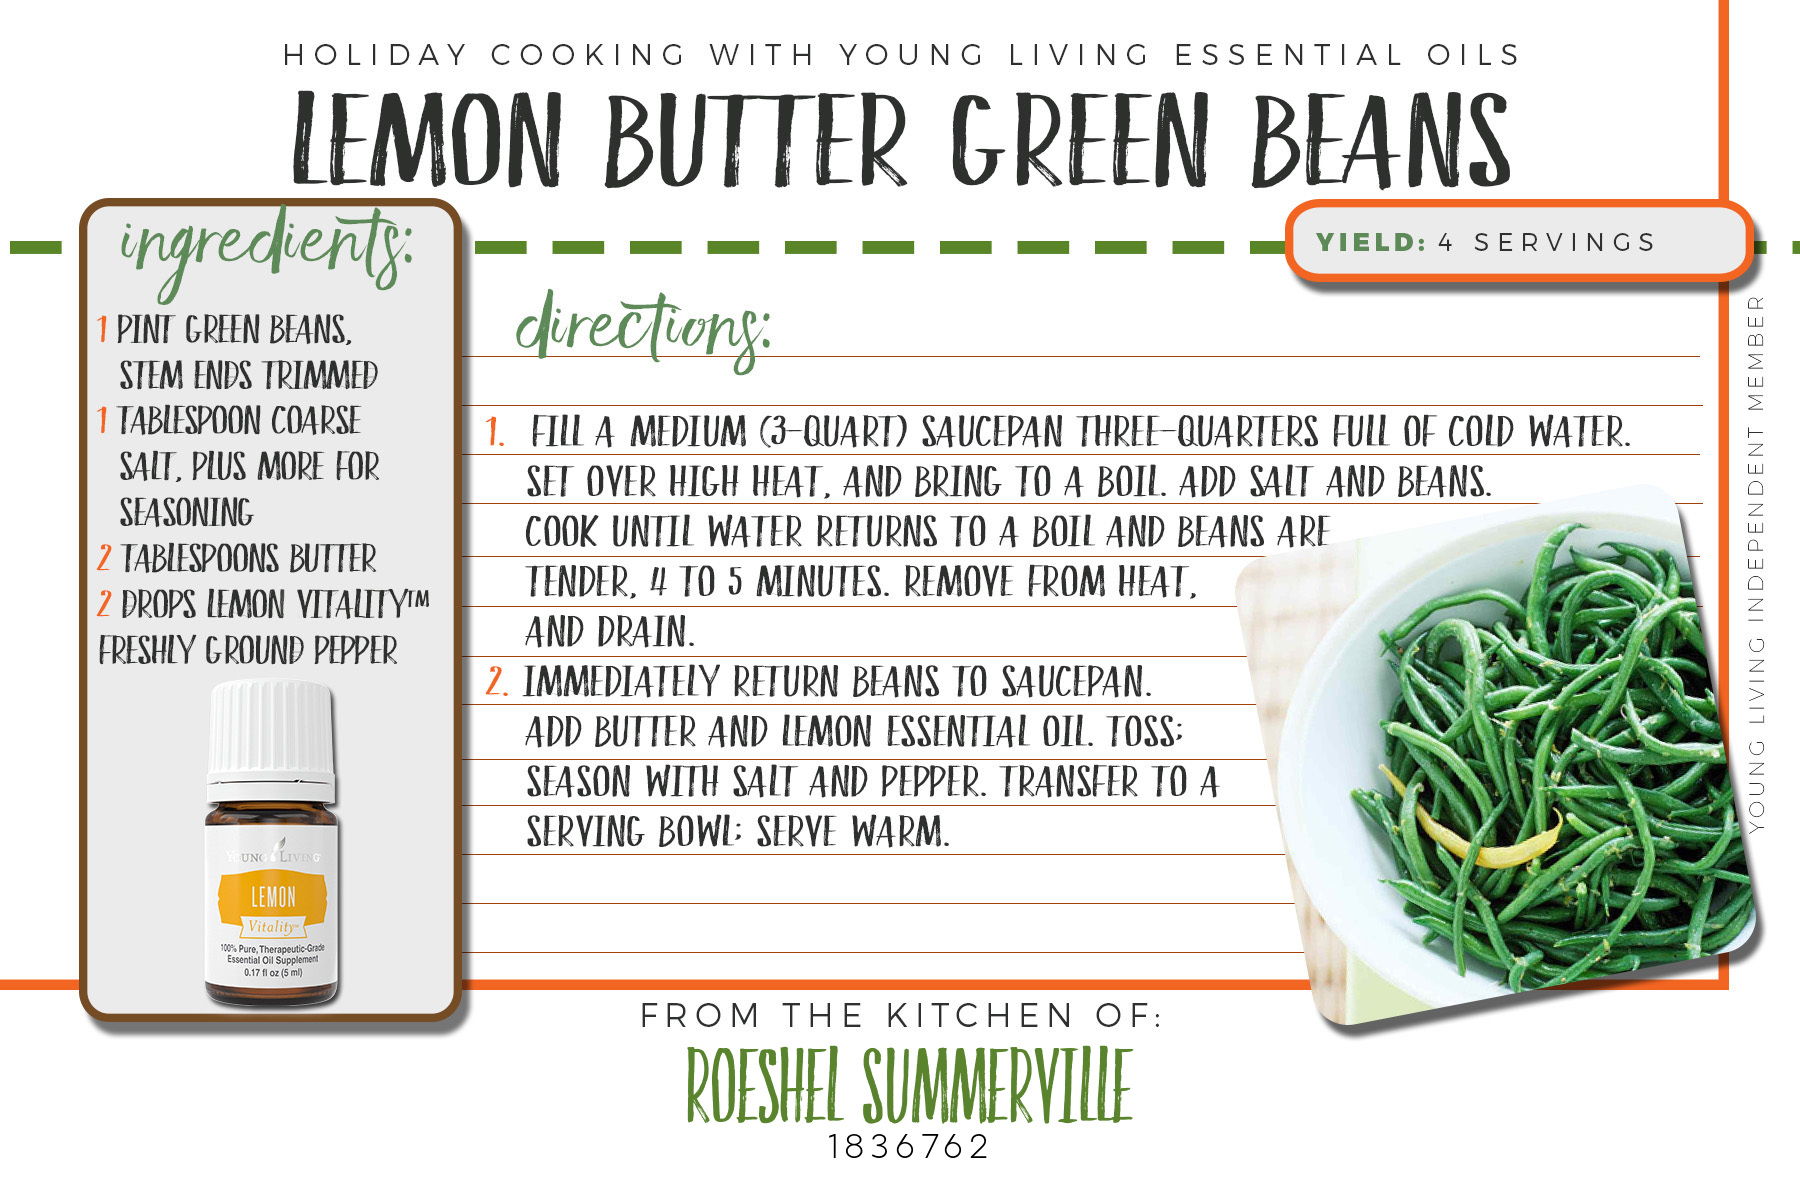 lemon butter green beans recipe